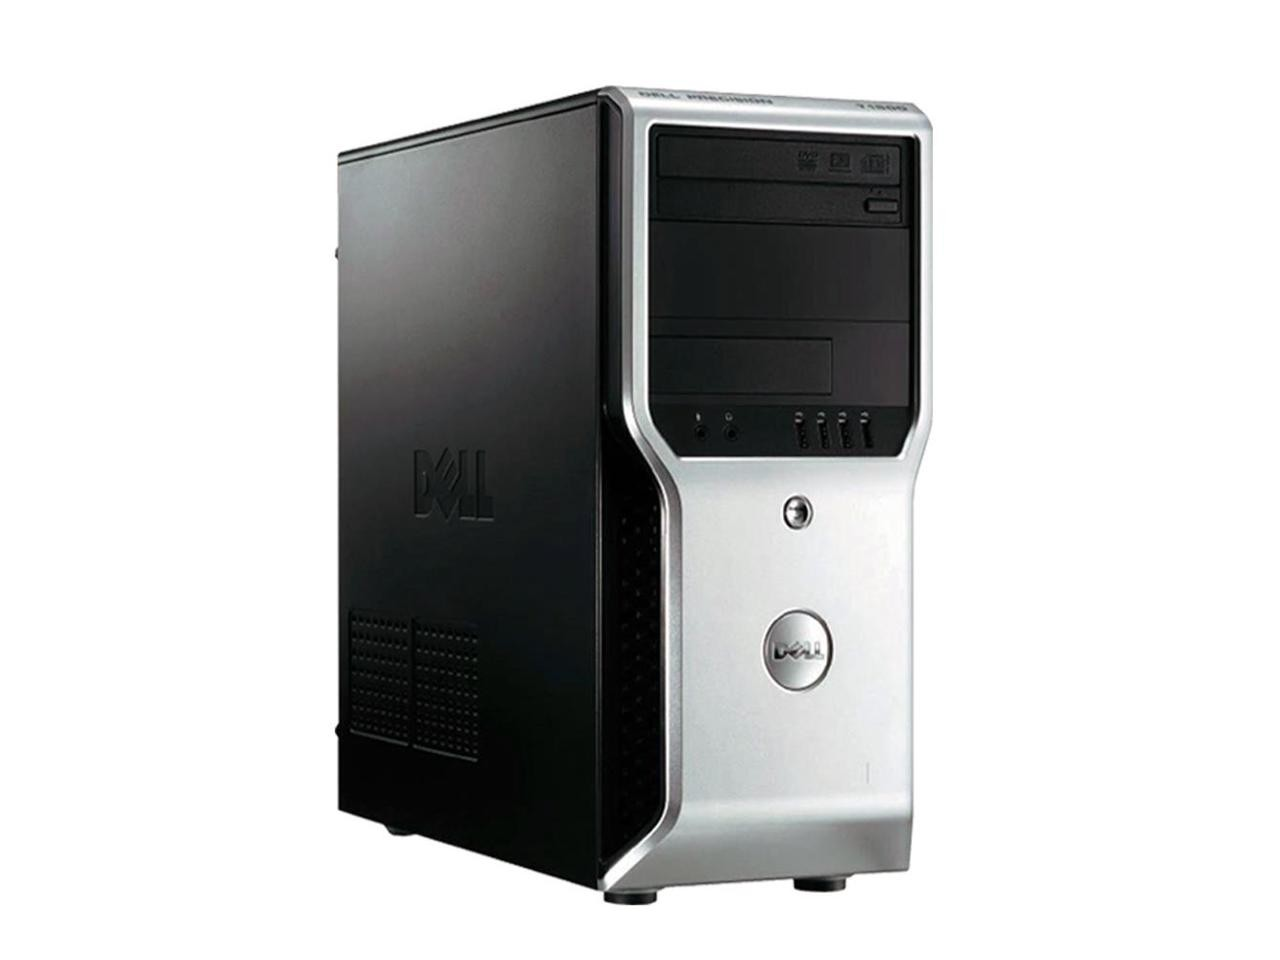 DEL-PRE-T1500-i7-Dell Precision T1500 Refurbished Workstation Core i7 500 GB HDD 4 GB RAM Windows 10 Pro-image